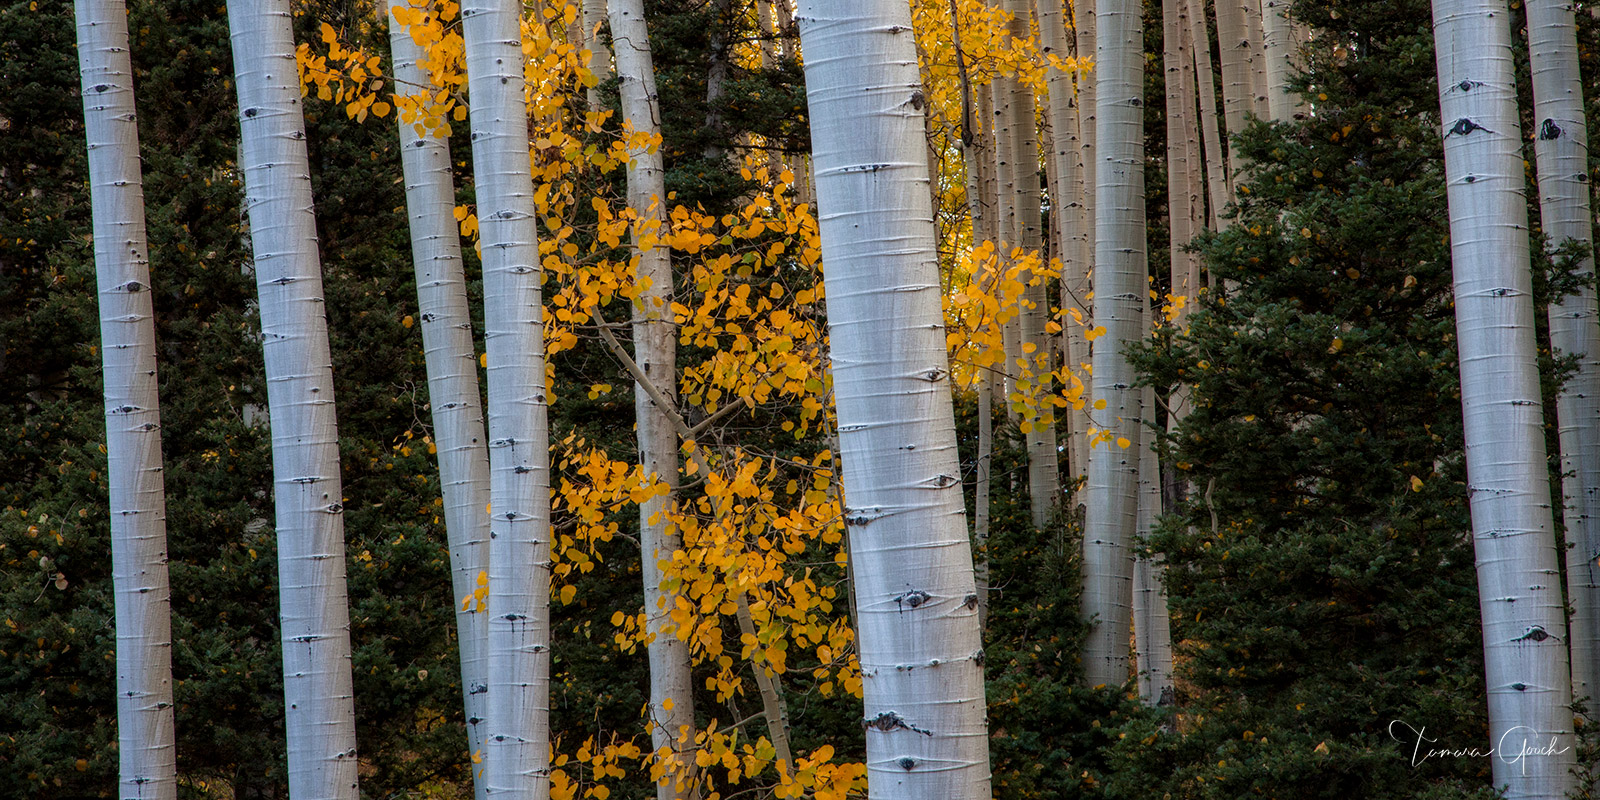 aspen, trunks, fall, autumn, pine, trees, forest, wood, nature, landscapce, collectiable, fine, art, limited, edition, panorama, luxury, image, photography, photo